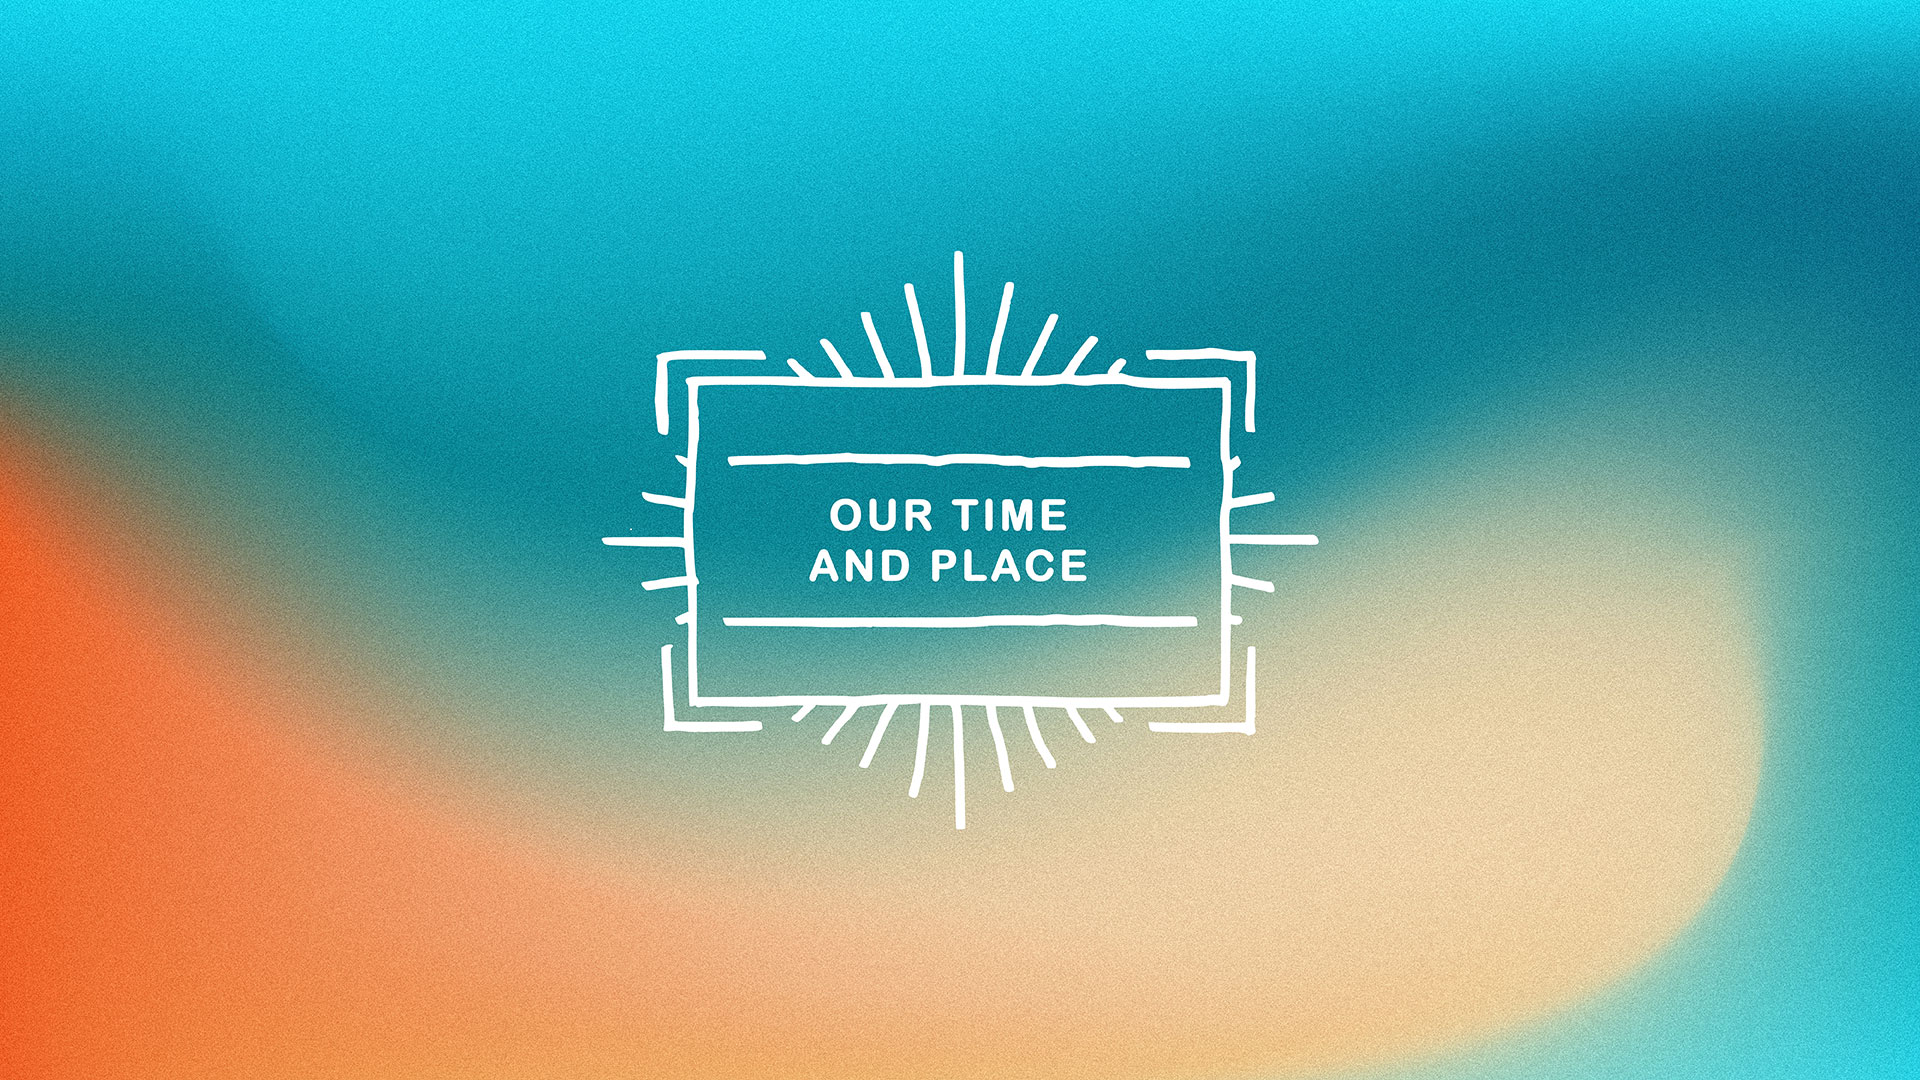 Series: Our Time And Place